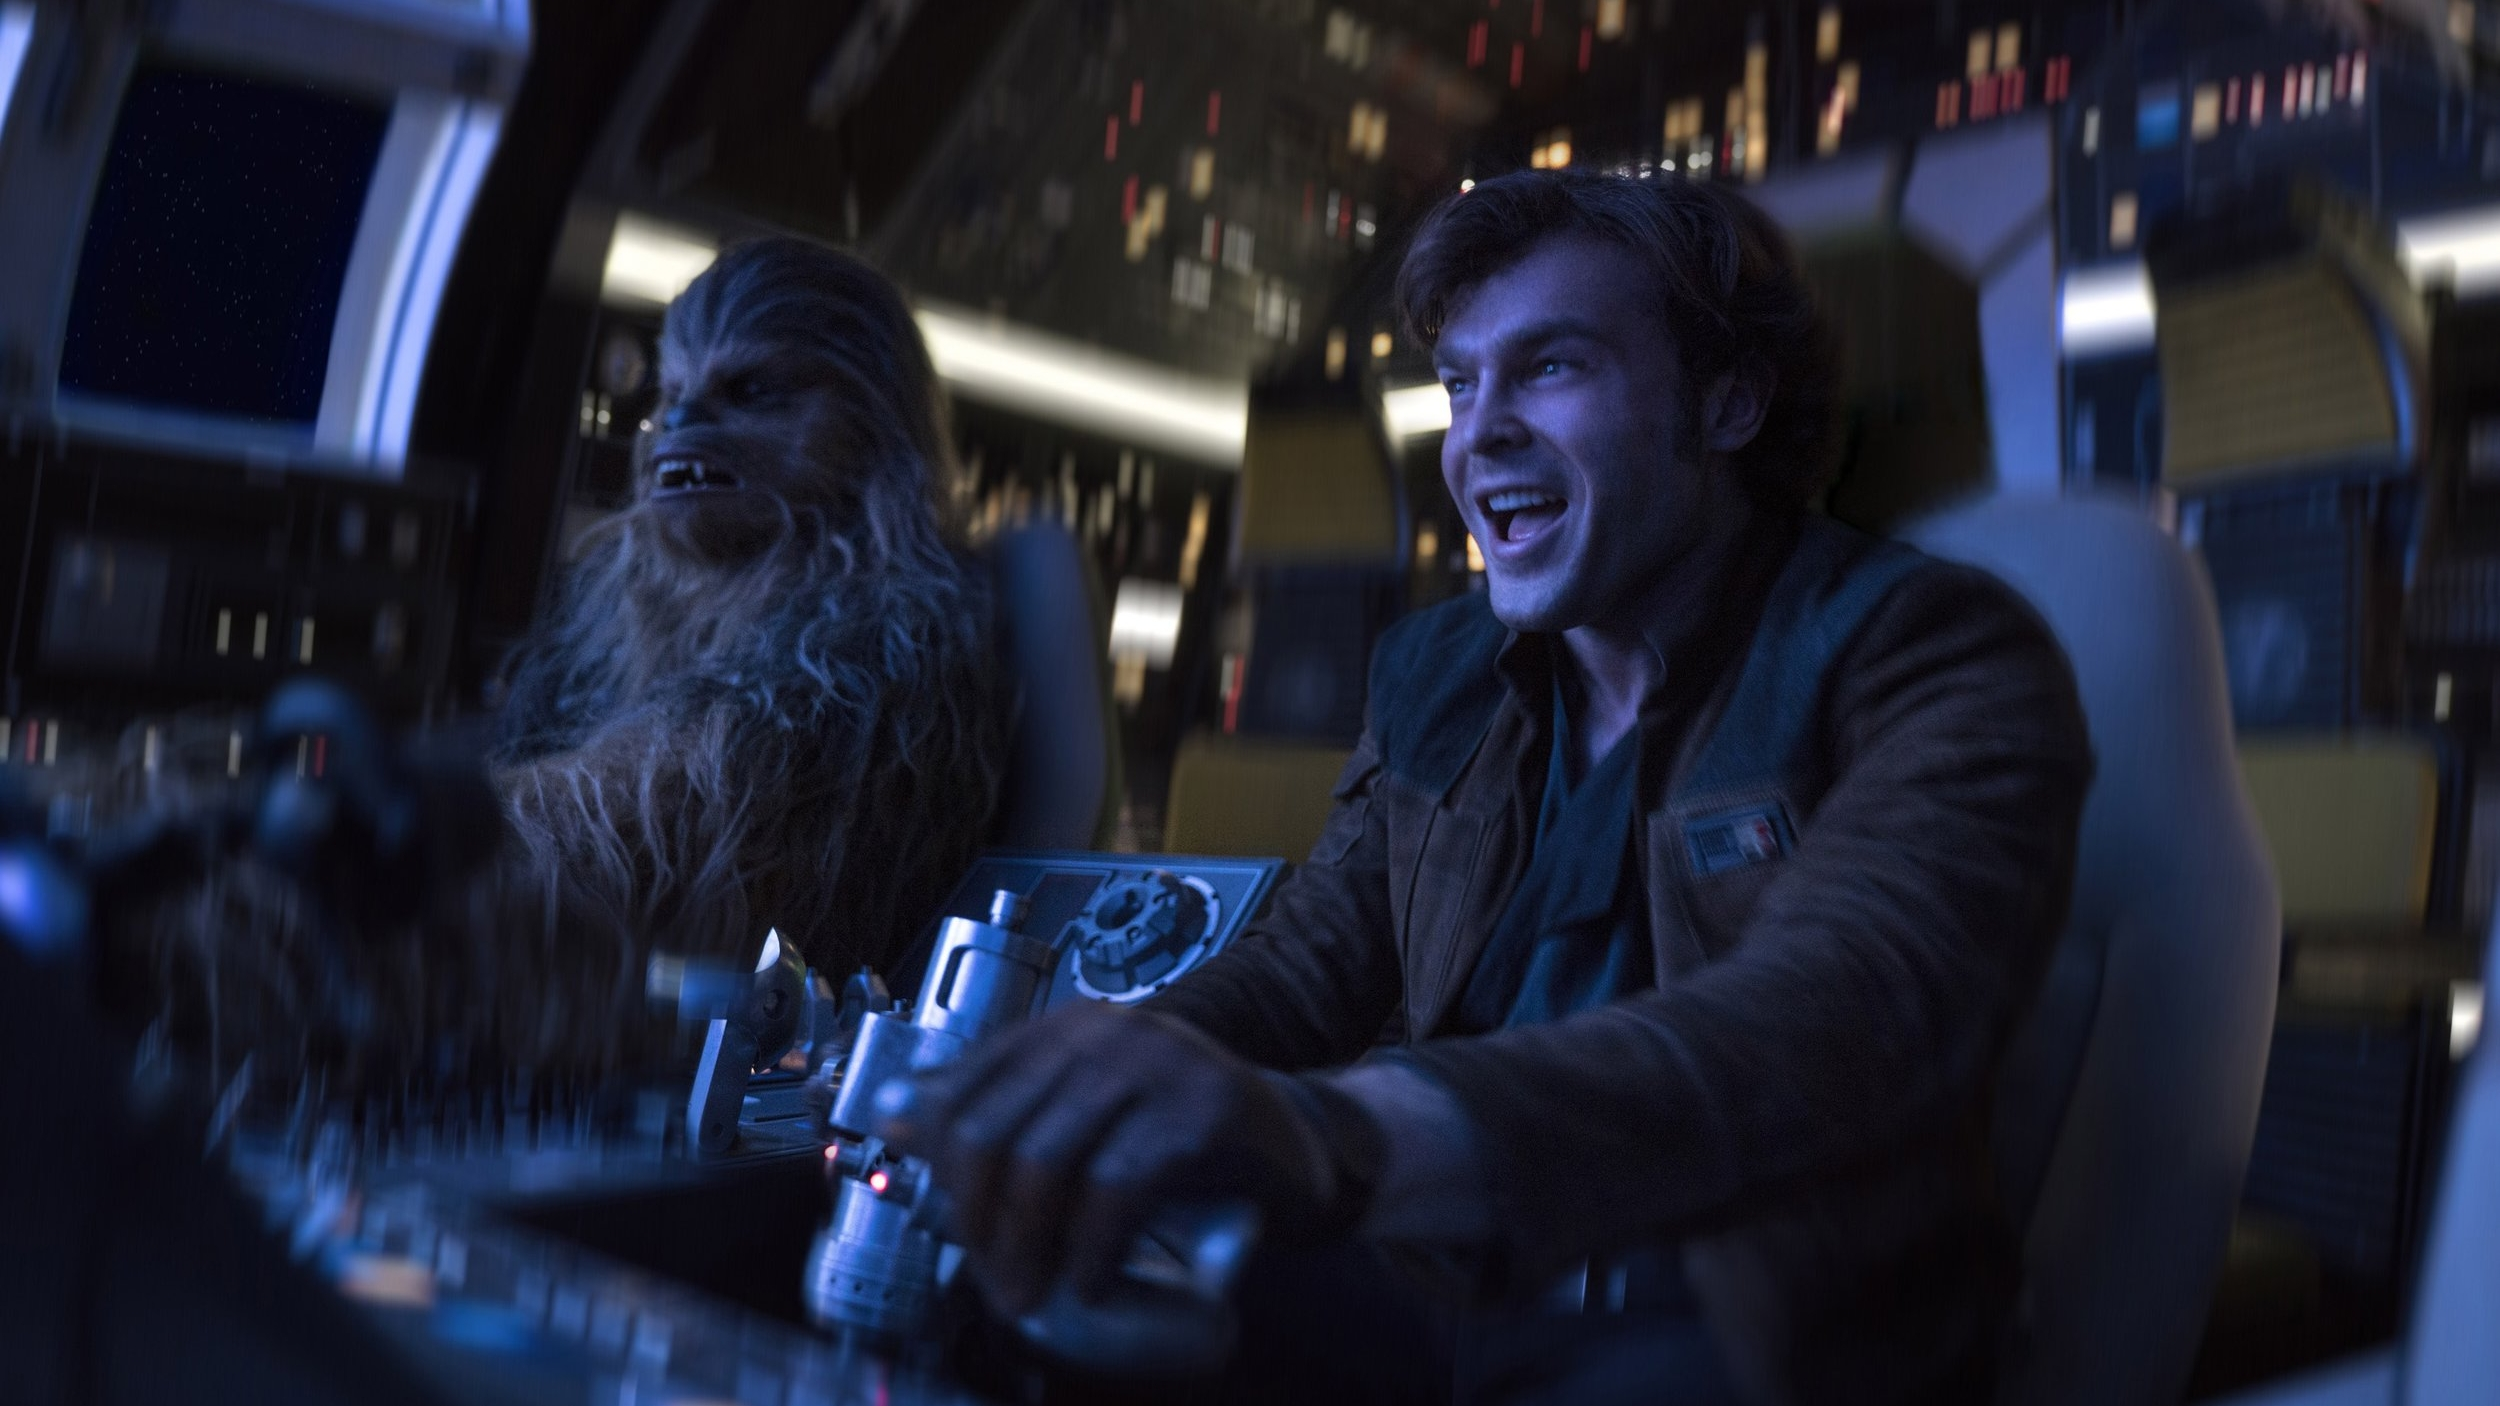 Caption: Alden Ehrenreich (Han Solo) and Joonas Suotamo (Chewbacca)in Ron Howard's 'Solo: A Star Wars Story'